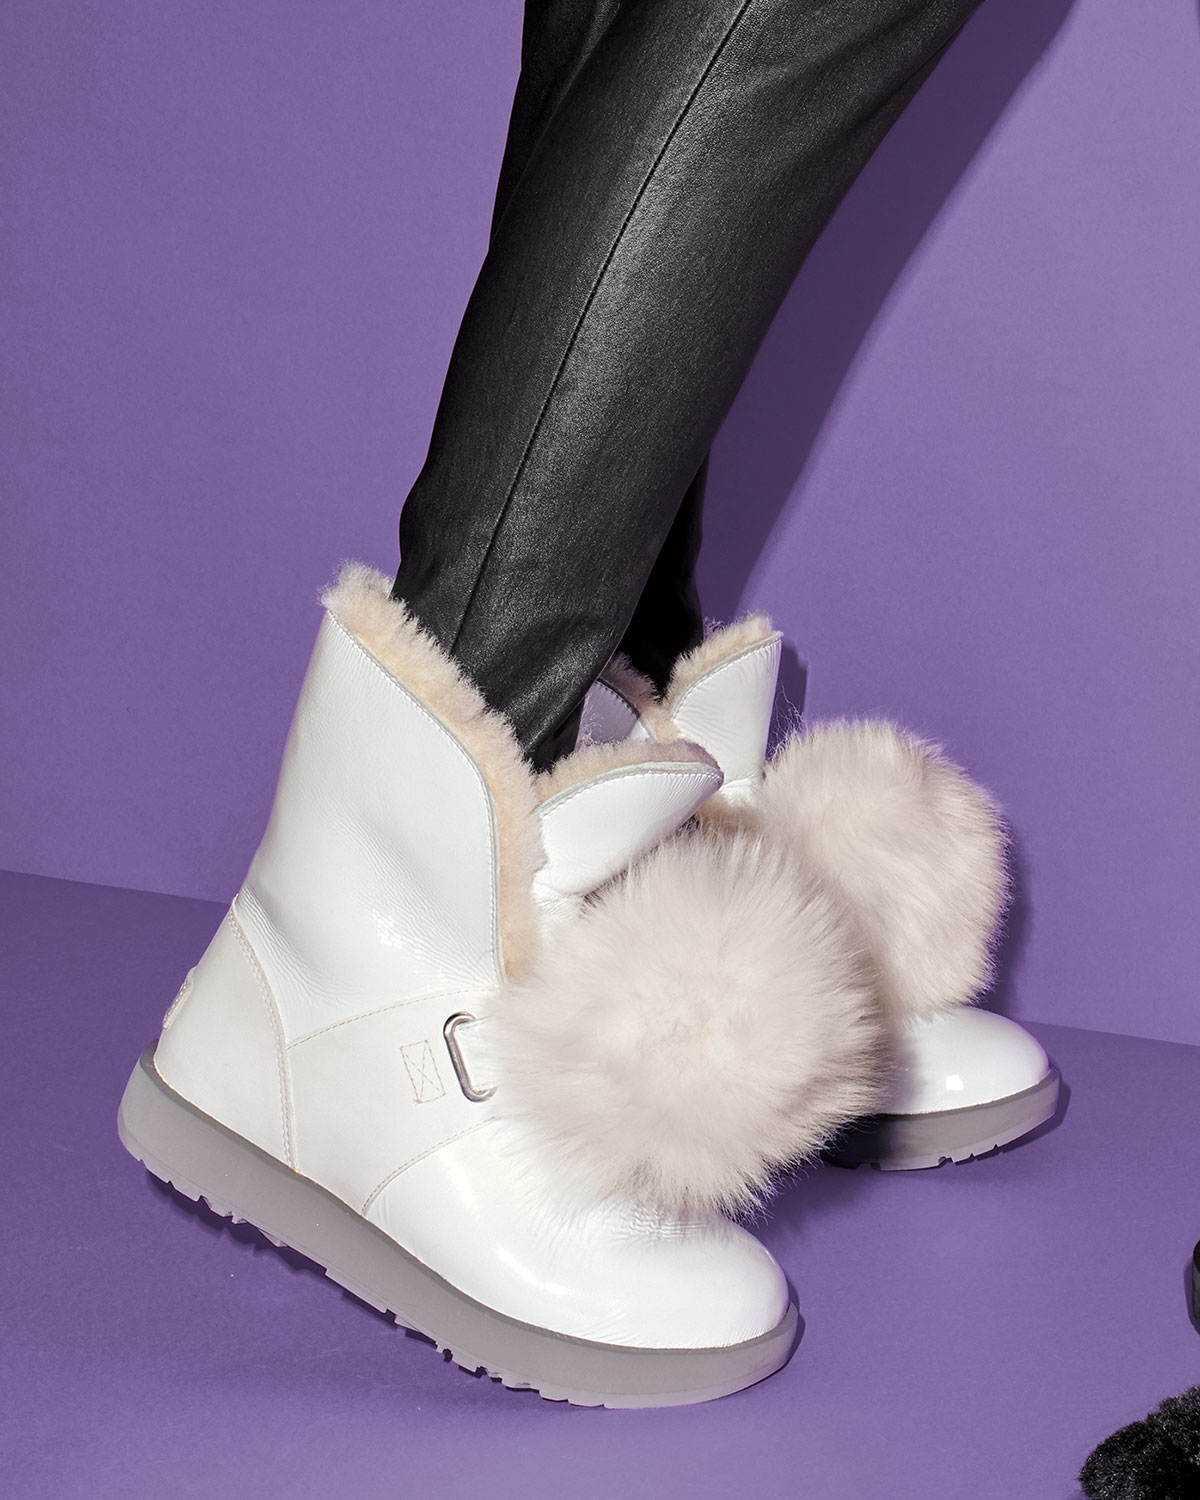 UGG Isley Waterproof Patent Boots with